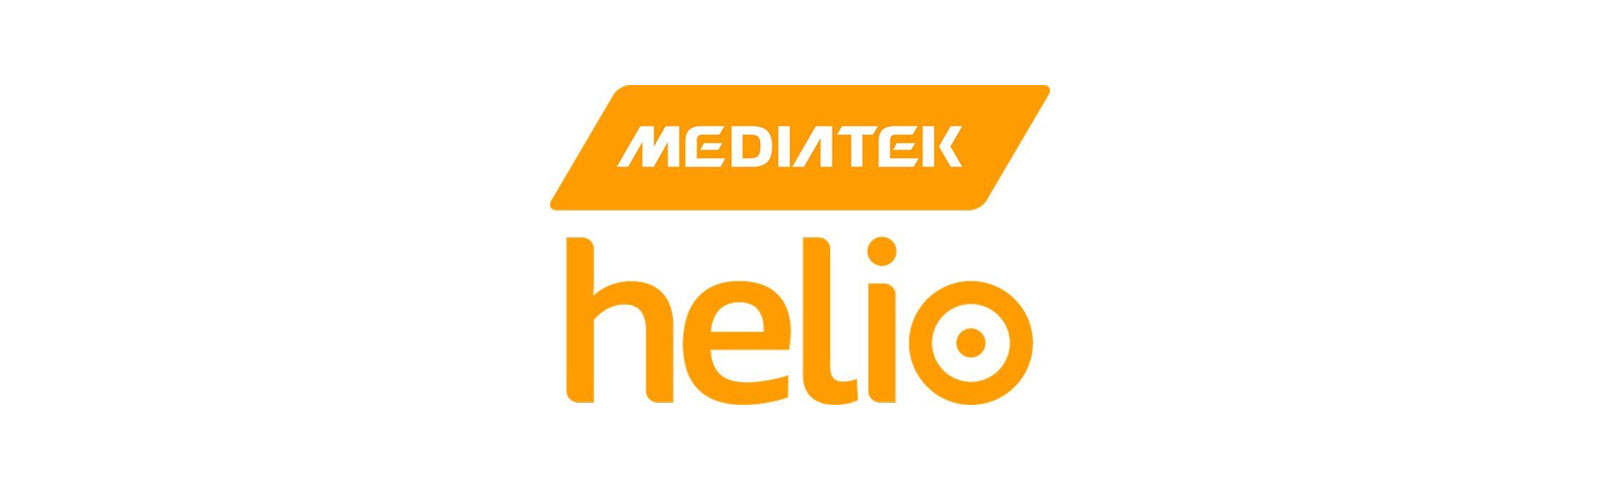 MediaTek will announce the Helio G90 chipset on July 30th